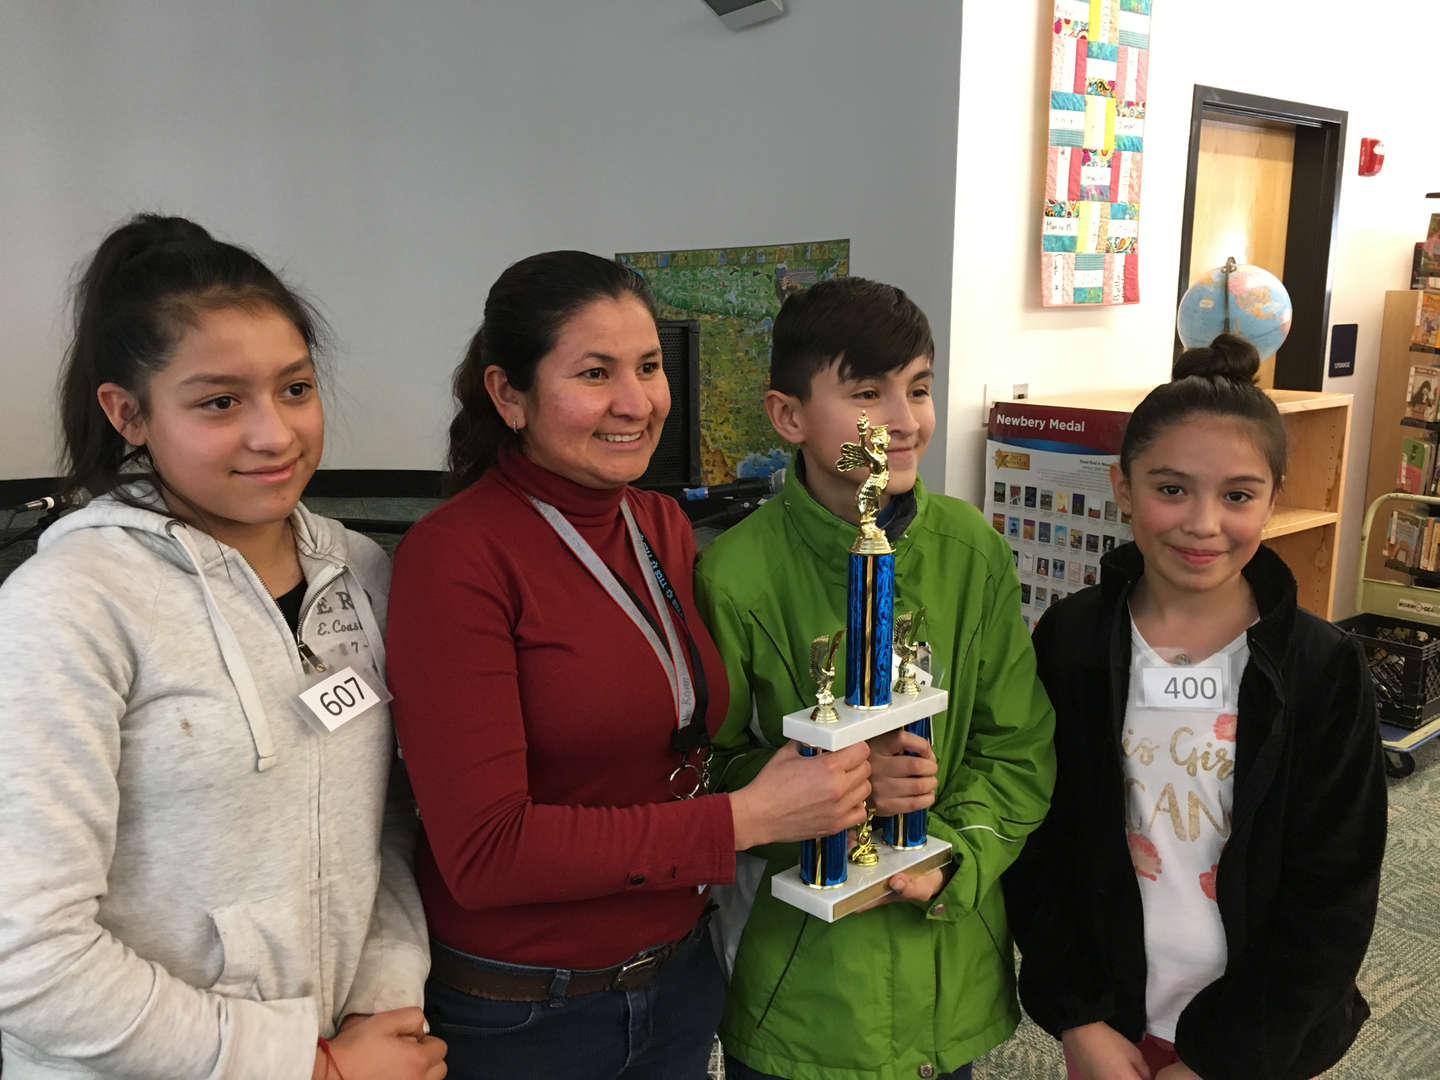 3 students and teacher with trophy